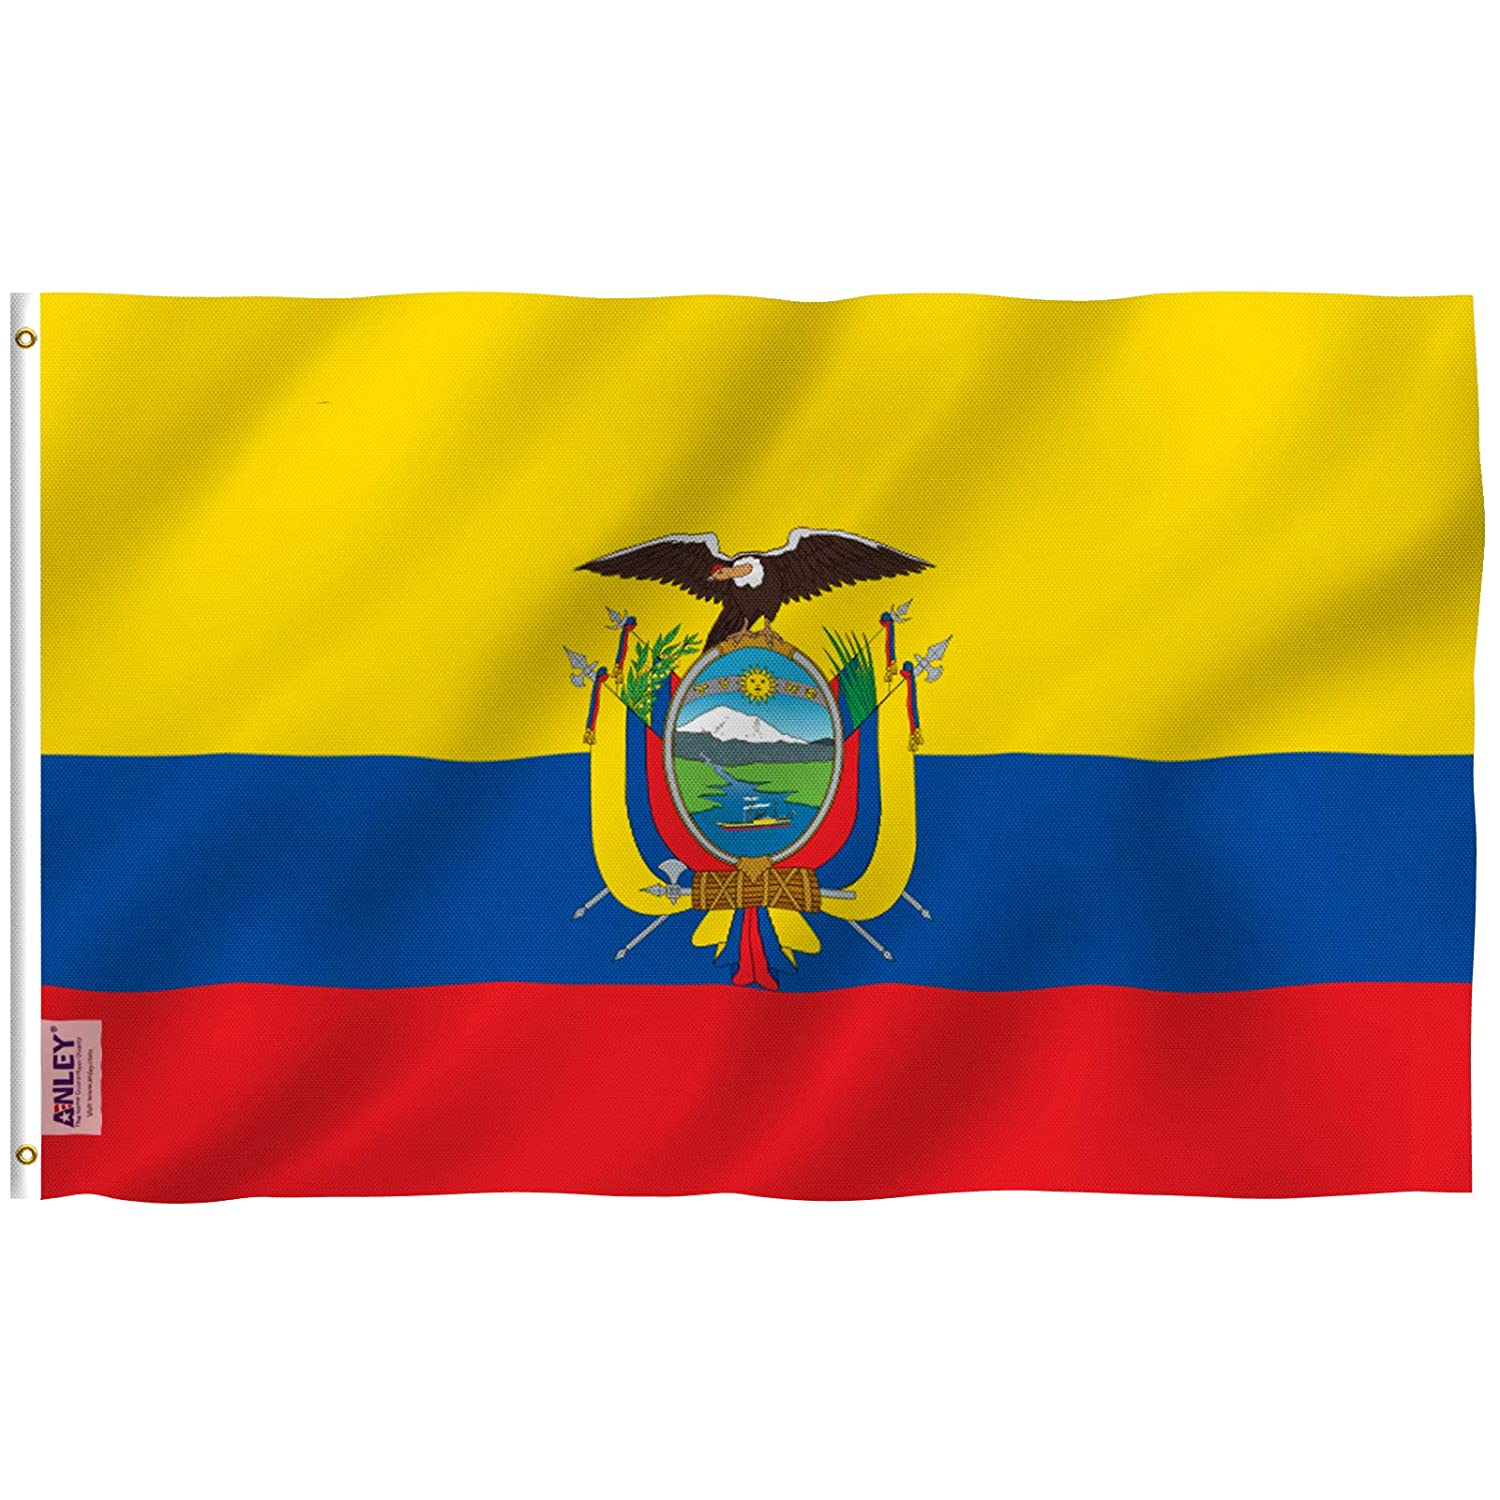 ANLEY Fly Breeze Canvas Header and Double Stitched 3x5 Foot Ecuador Flag Vivid Color and UV Fade Resistant Ecuadoran National Flags Polyester with Brass Grommets 3 X 5 Ft